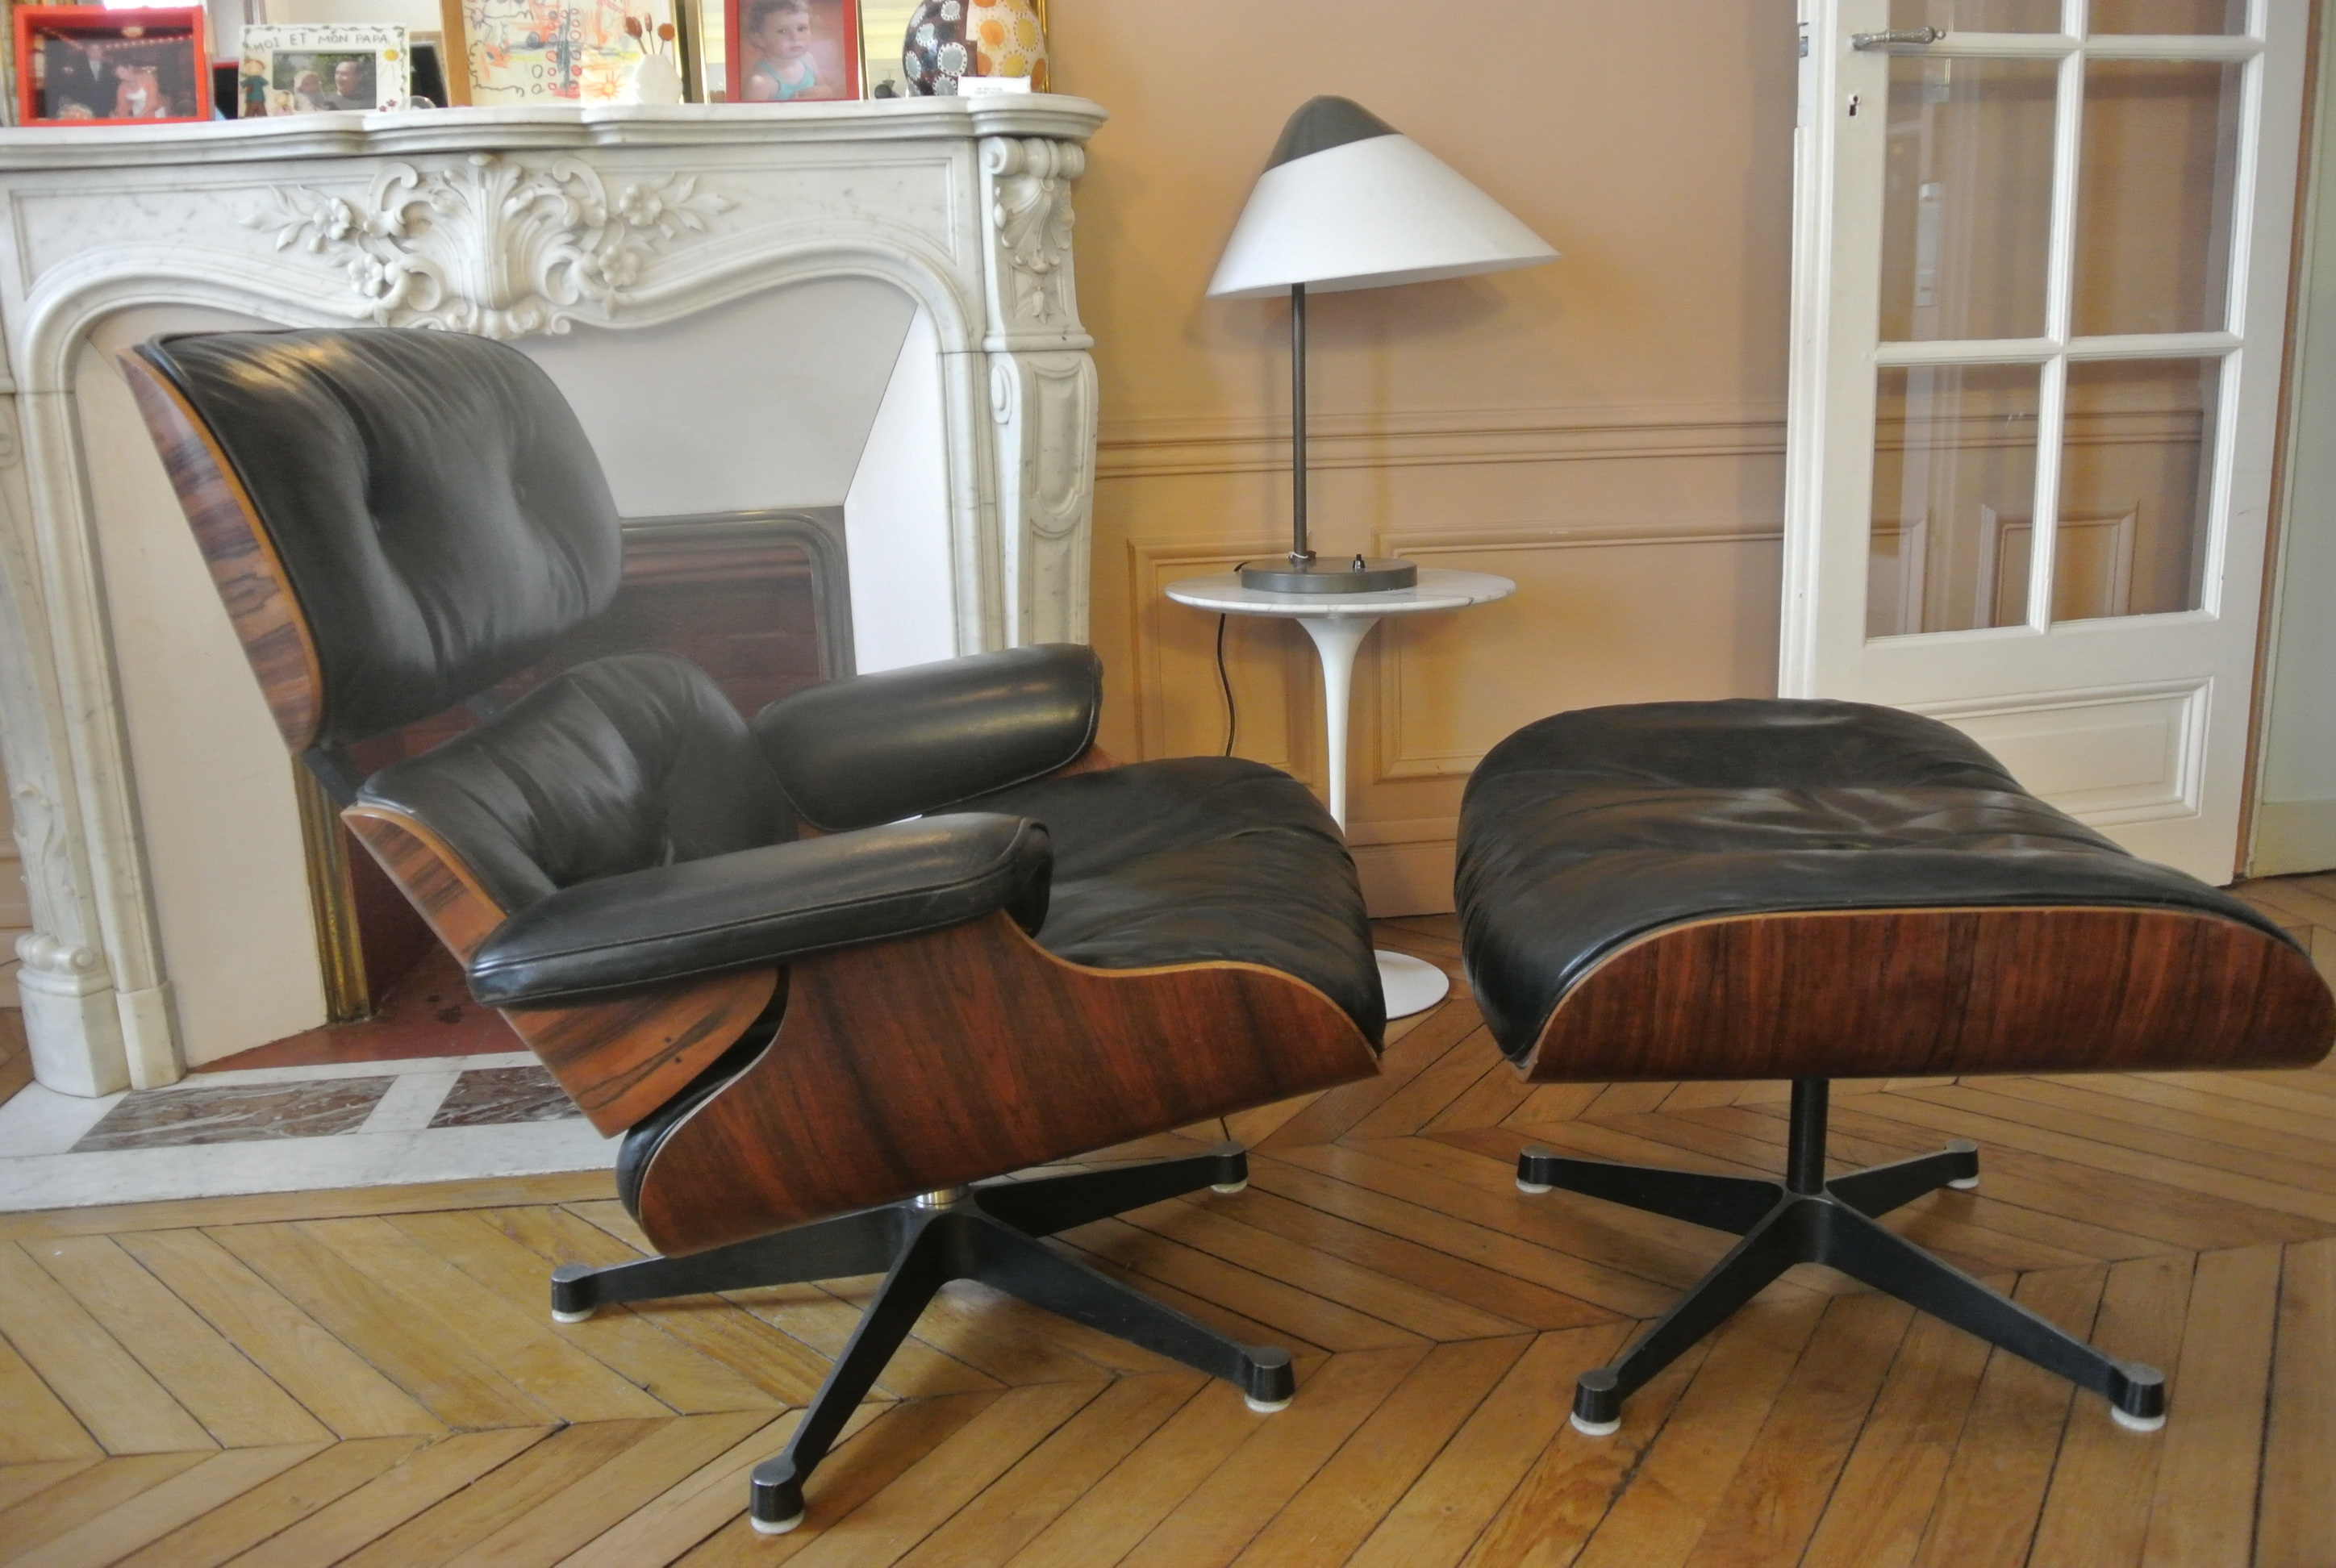 Fauteuil Lounge Chair EamesHerman Miller LAtelier 50